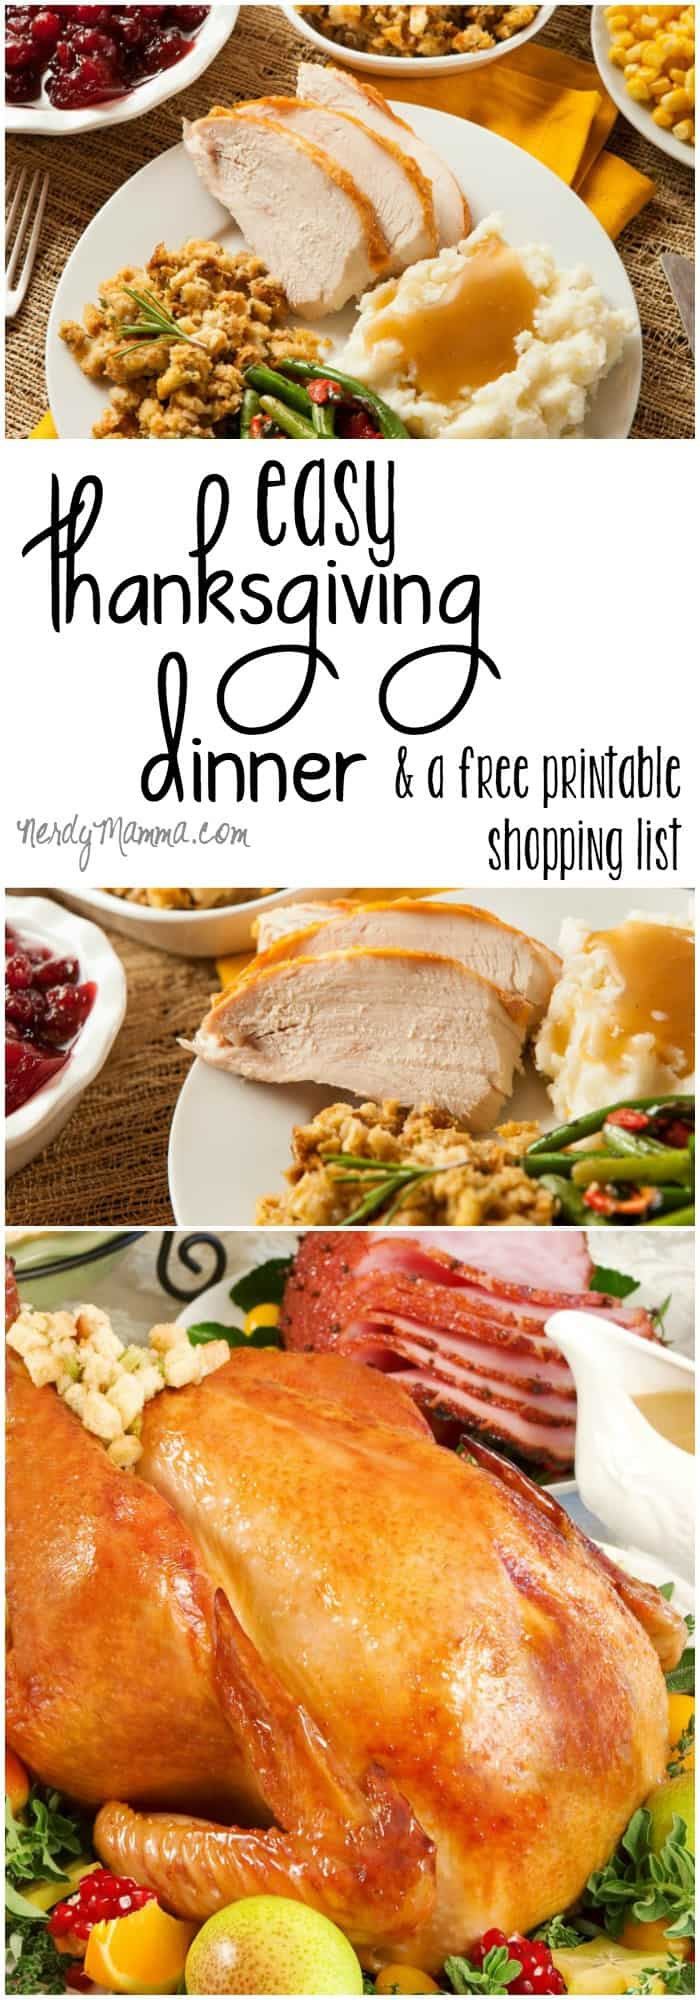 I love having all my thanksgiving dinner laid-out like this. So easy to just click and cook. And with the printable shopping list--my Thanksgiving dinner just got tons easier! LOL!